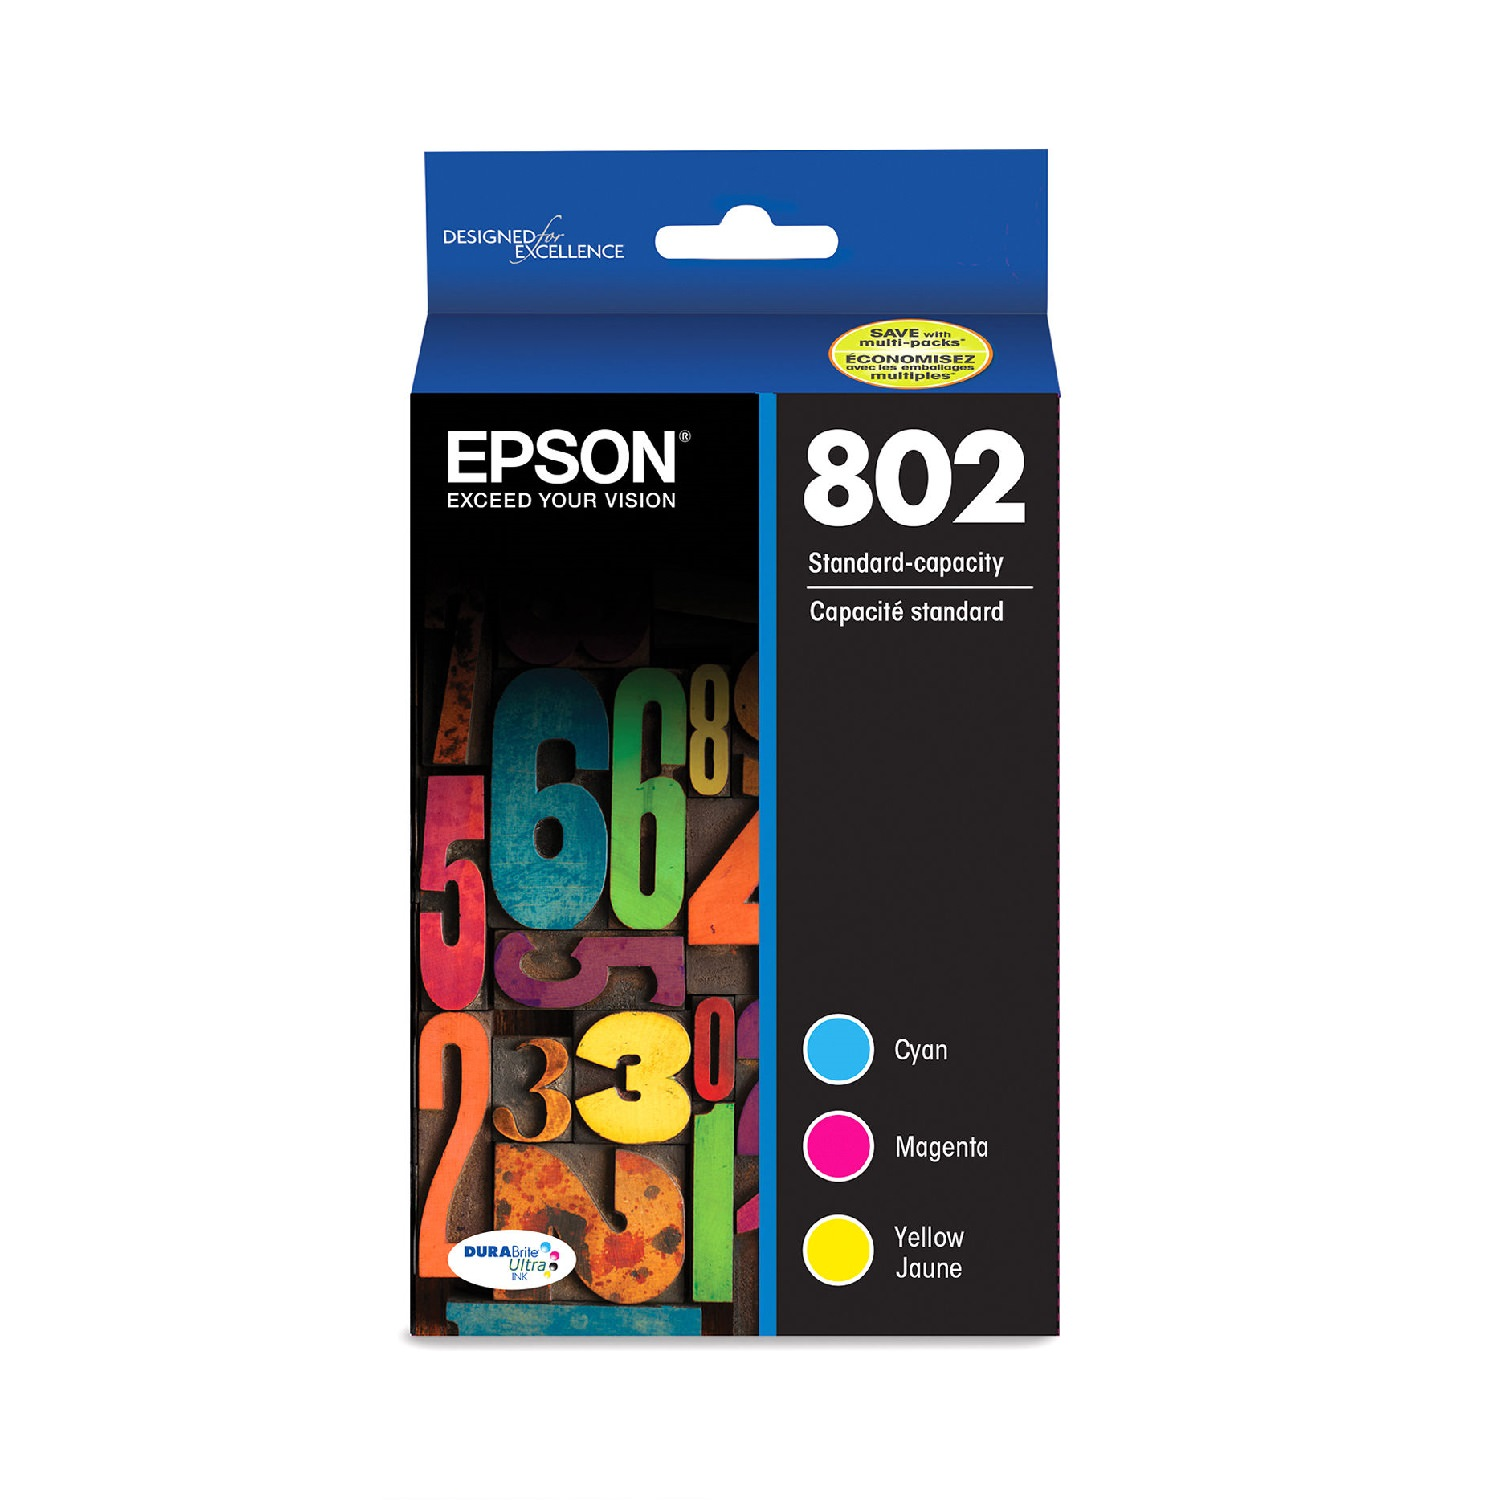 Epson DURABrite Ultra Ink 802 Ink Cartridge Multi Pack